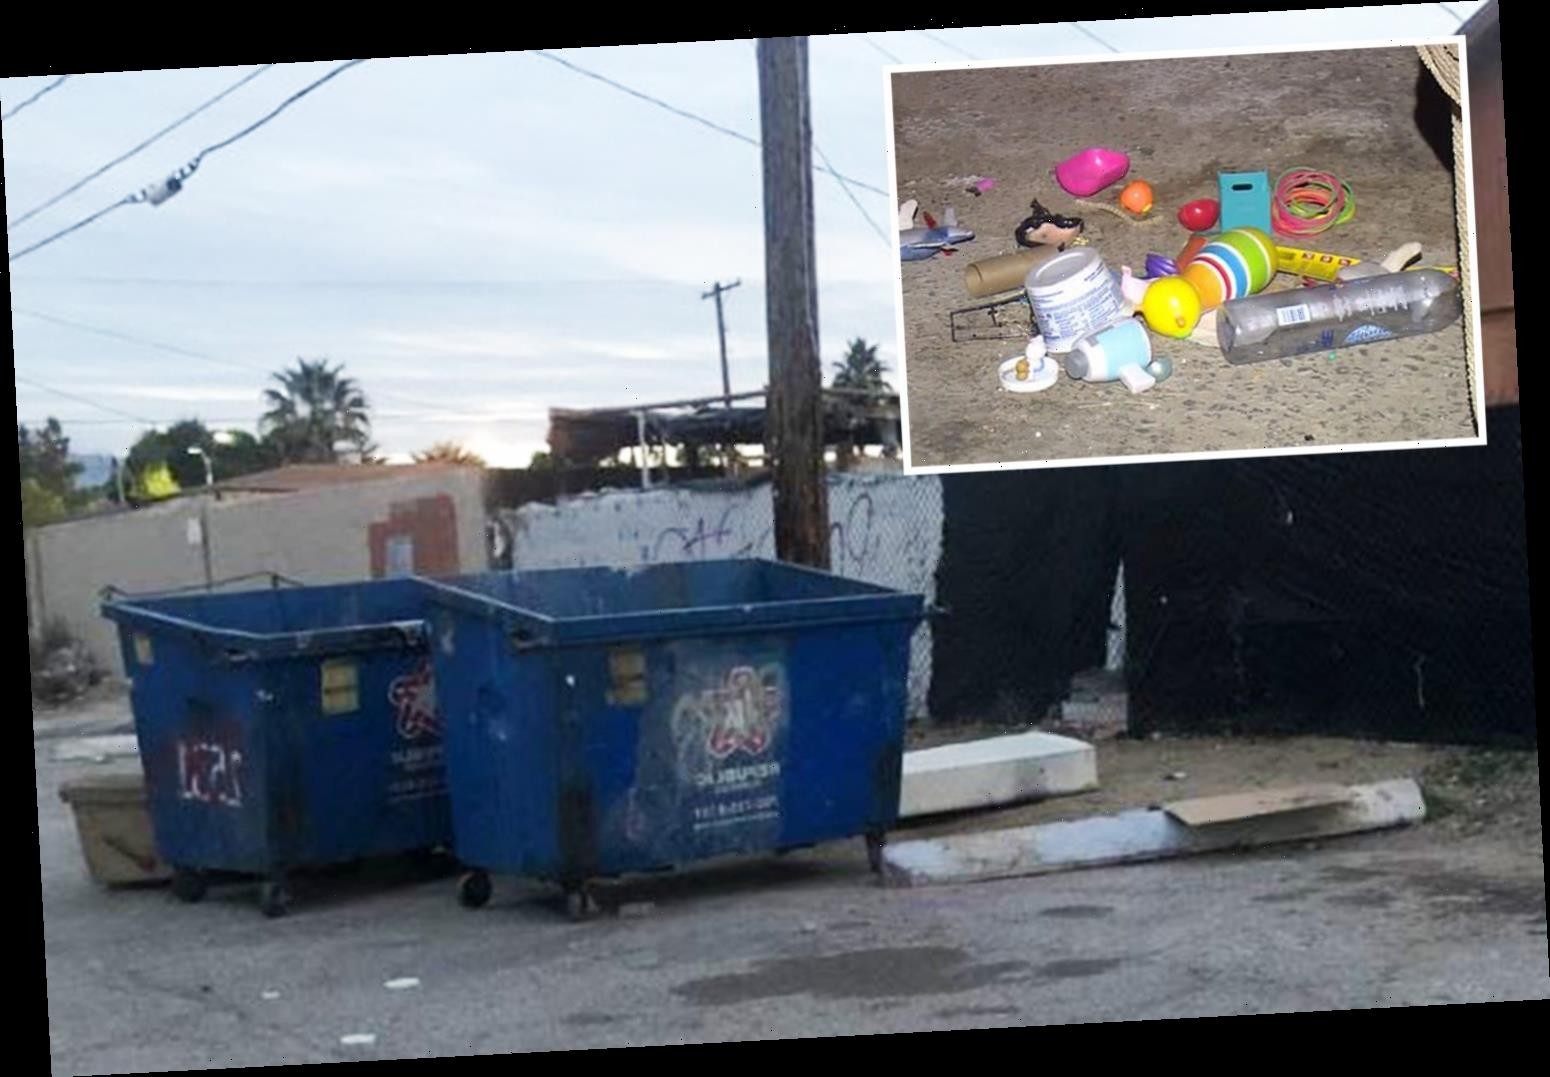 Helpless newborn baby found dead abandoned inside a TRASH CAN in Las Vegas – The Sun